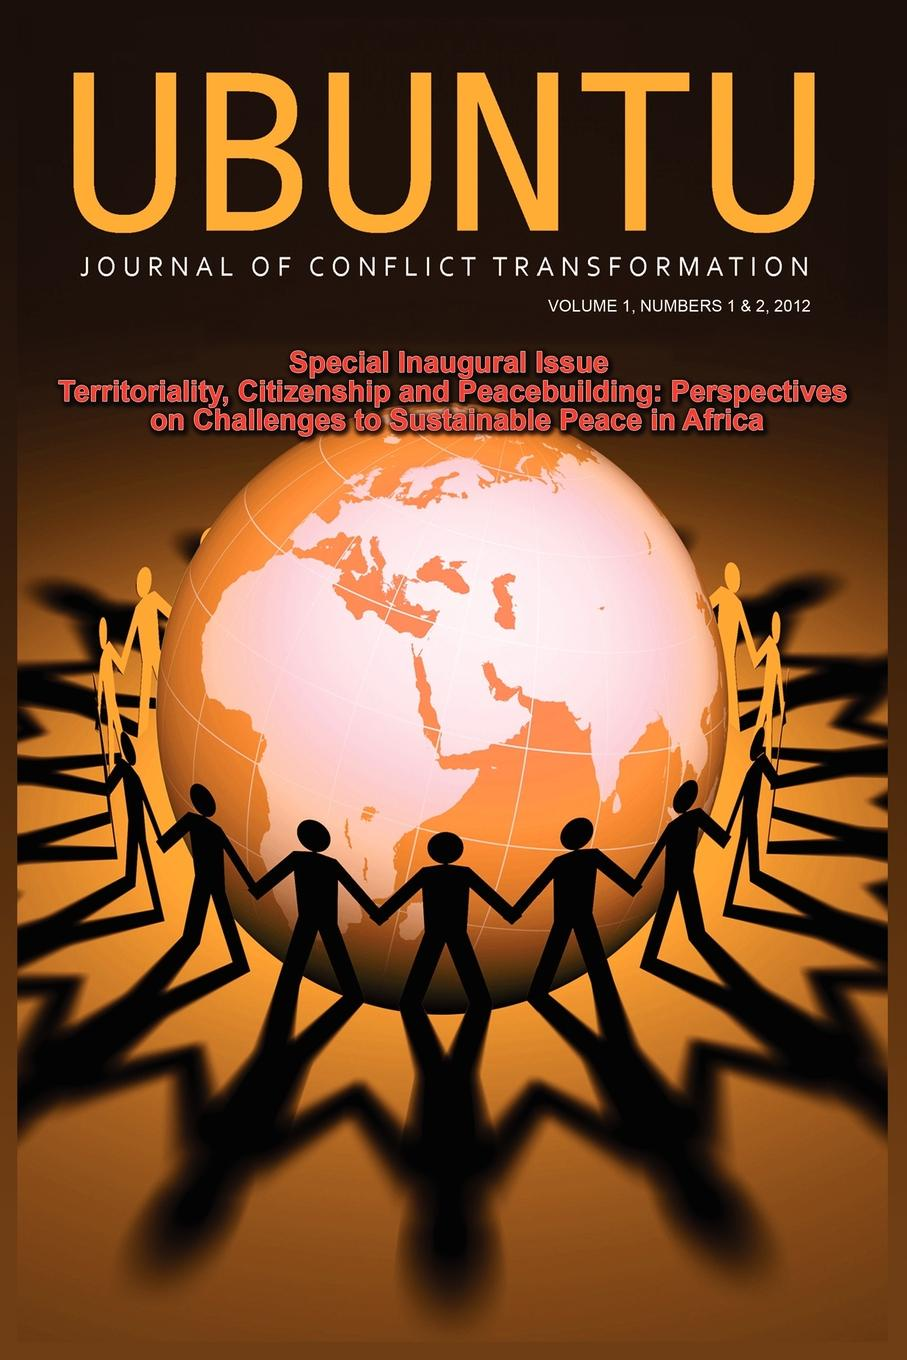 Ubuntu. Journal of Conflict and Social Transformation: Vol 1, Number 1-2, 2012 land conflicts in likia location molo district